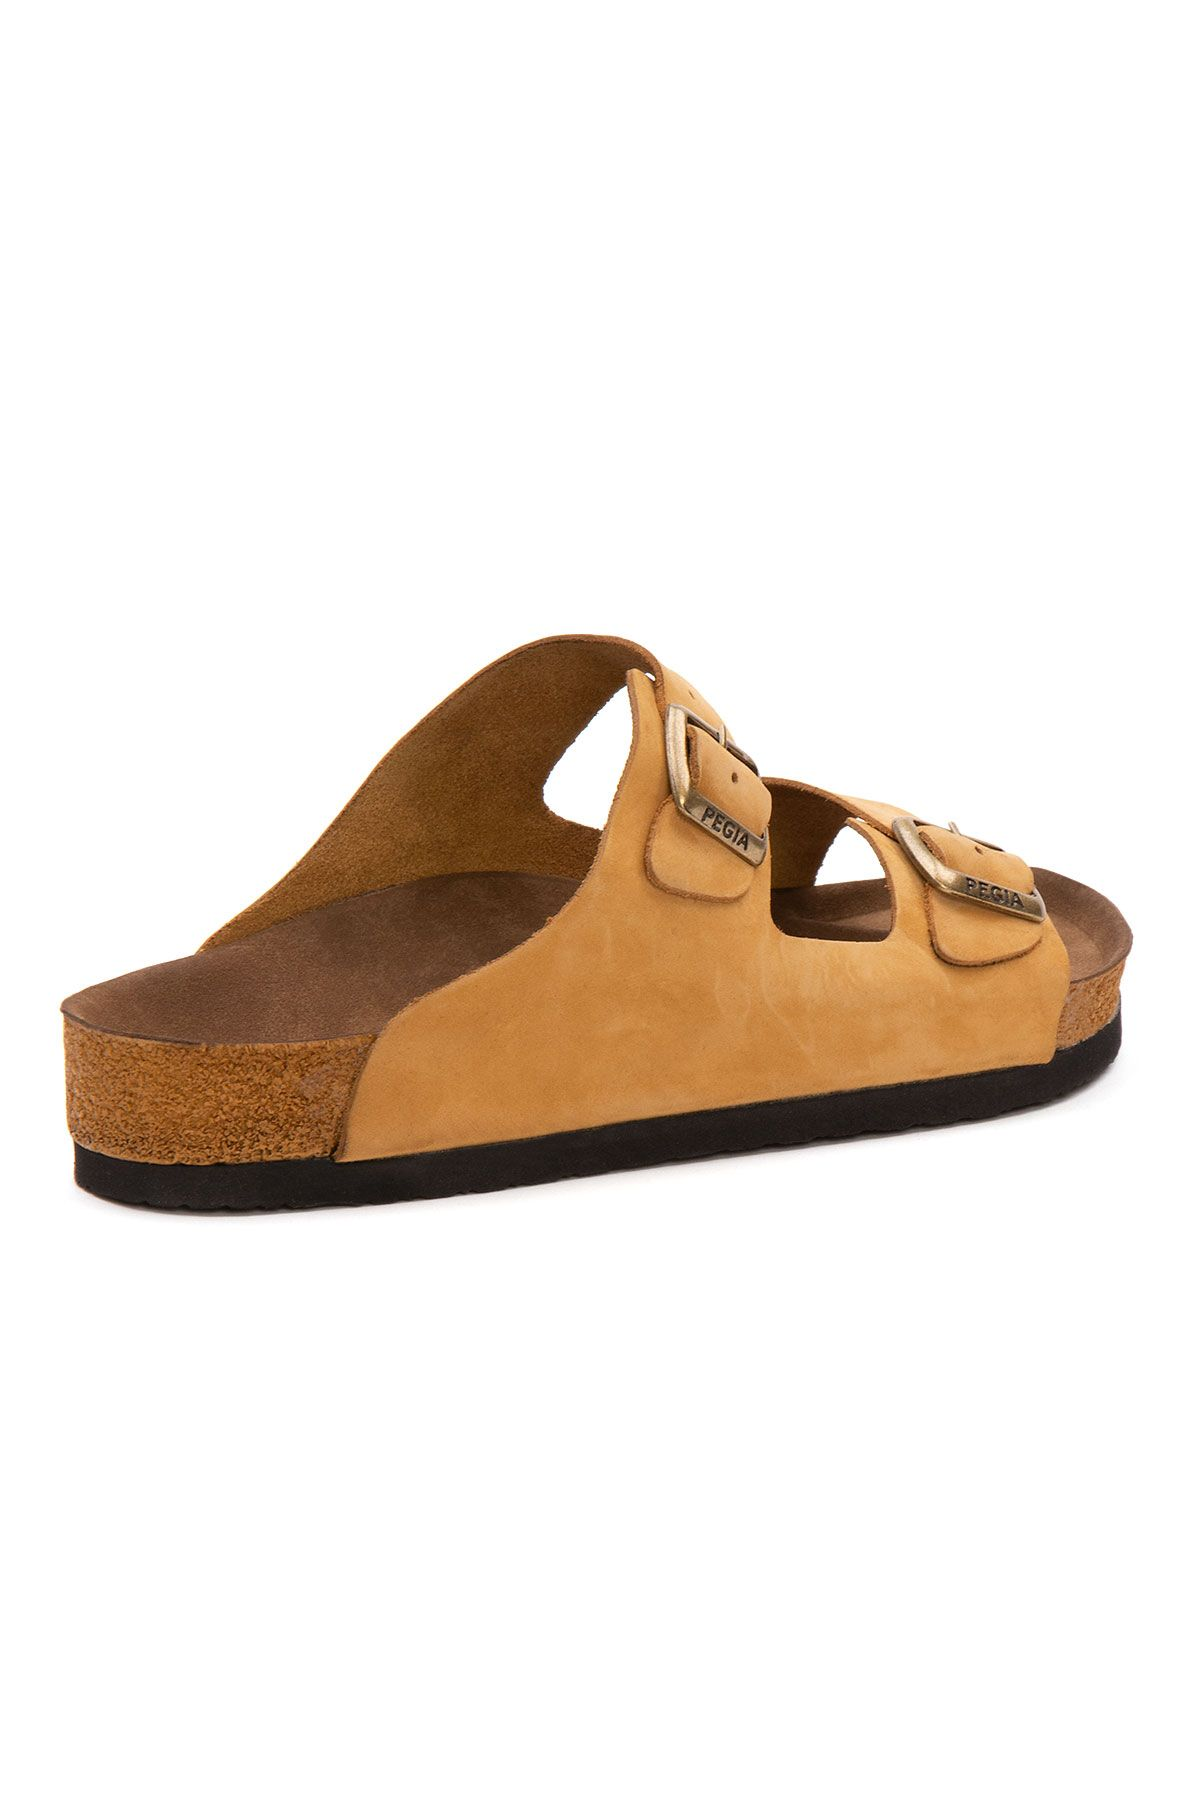 Pegia Women's Leather Strap Slippers 215520 Yellow